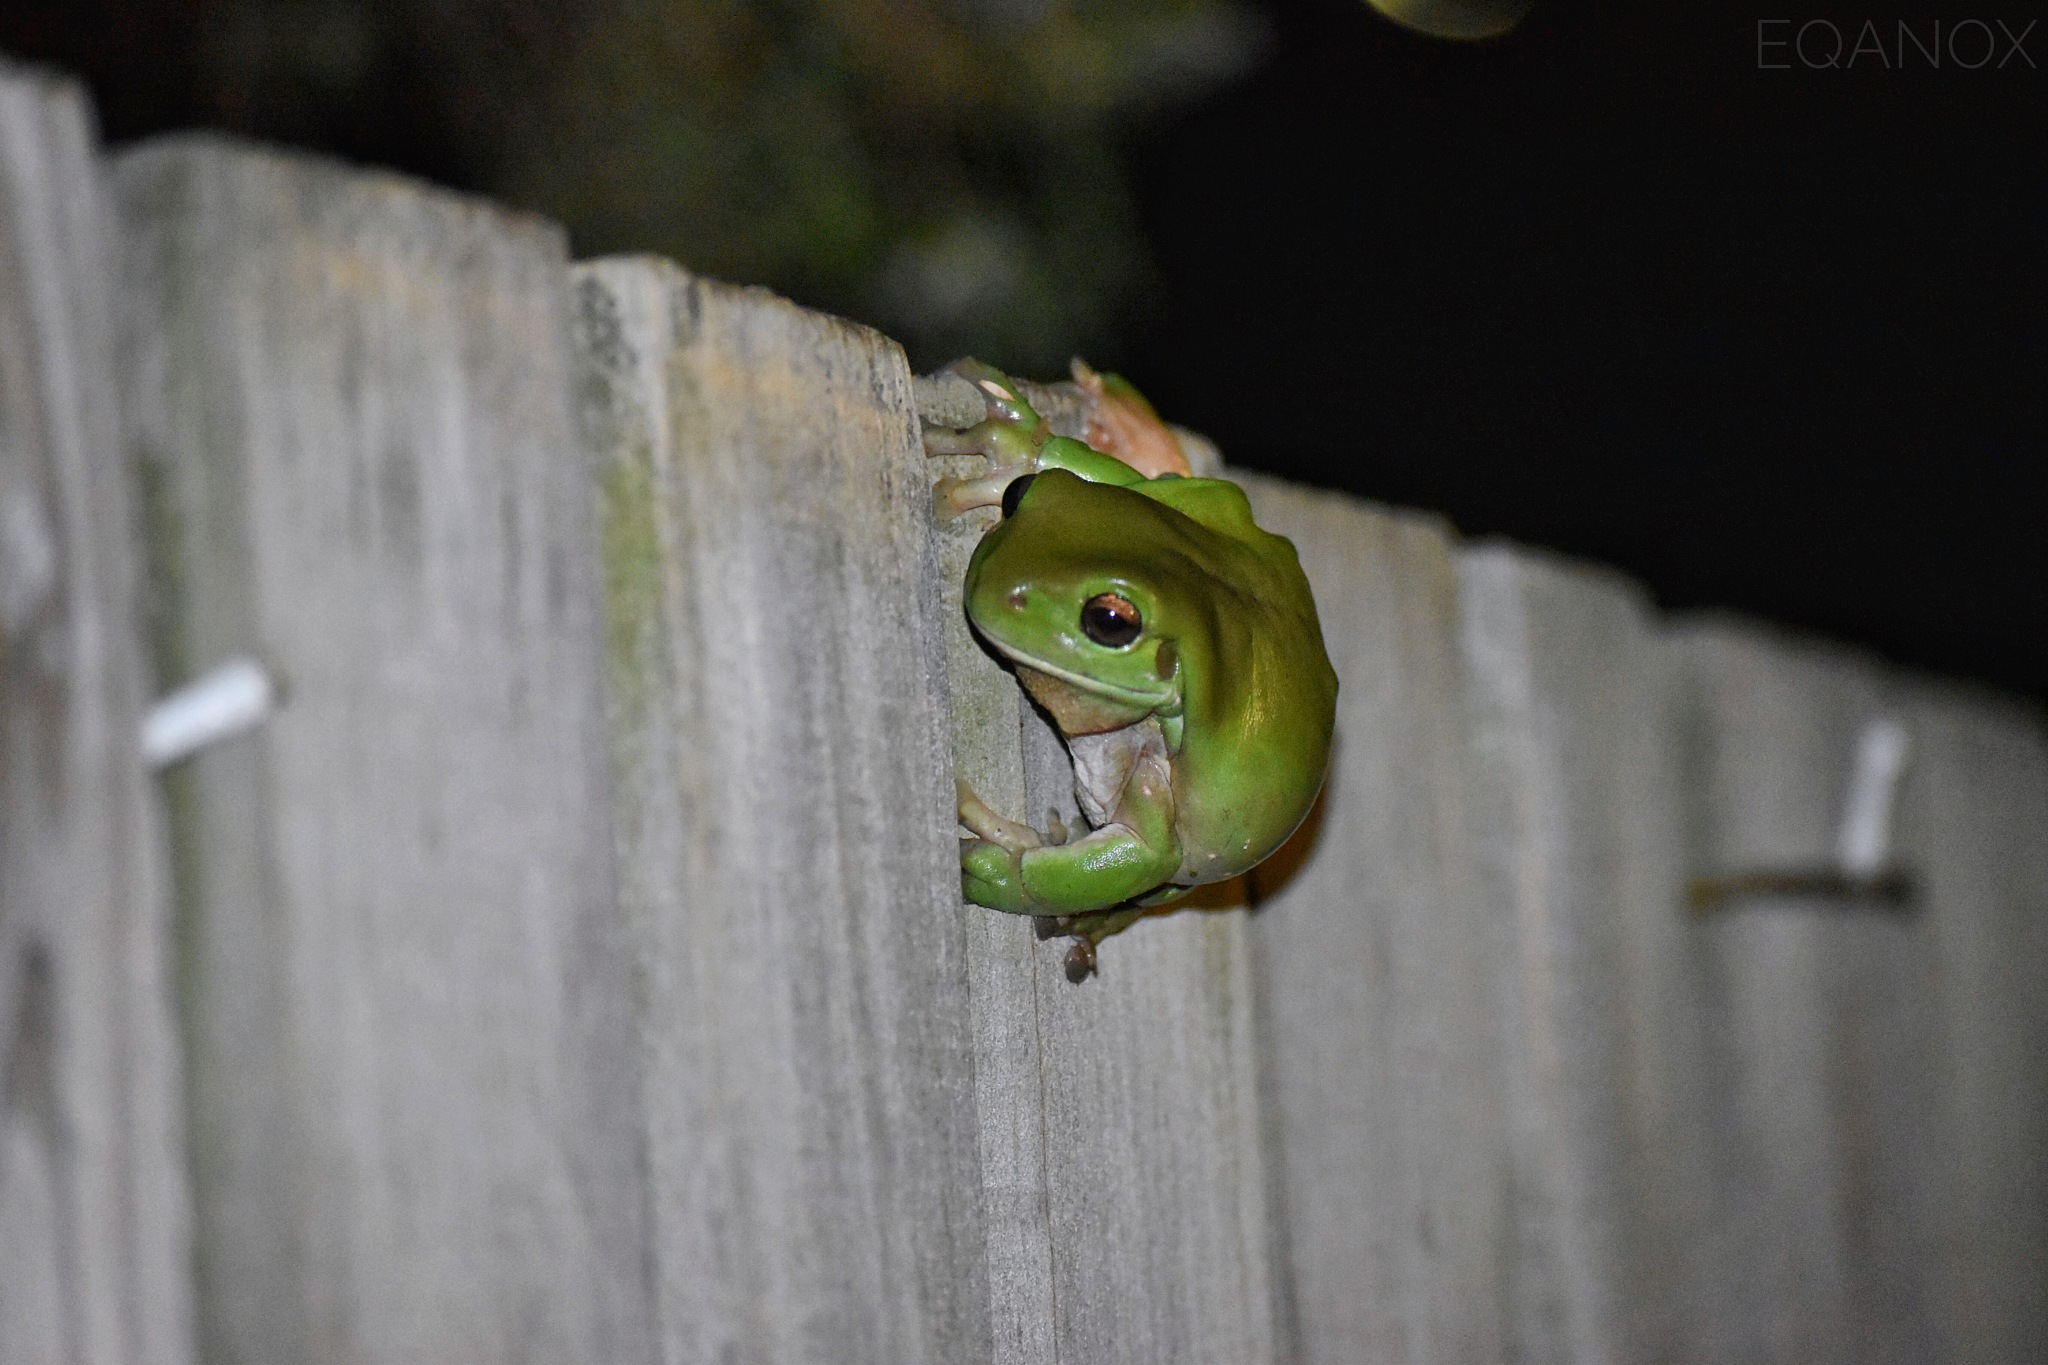 little green friend  by eqanox_photography